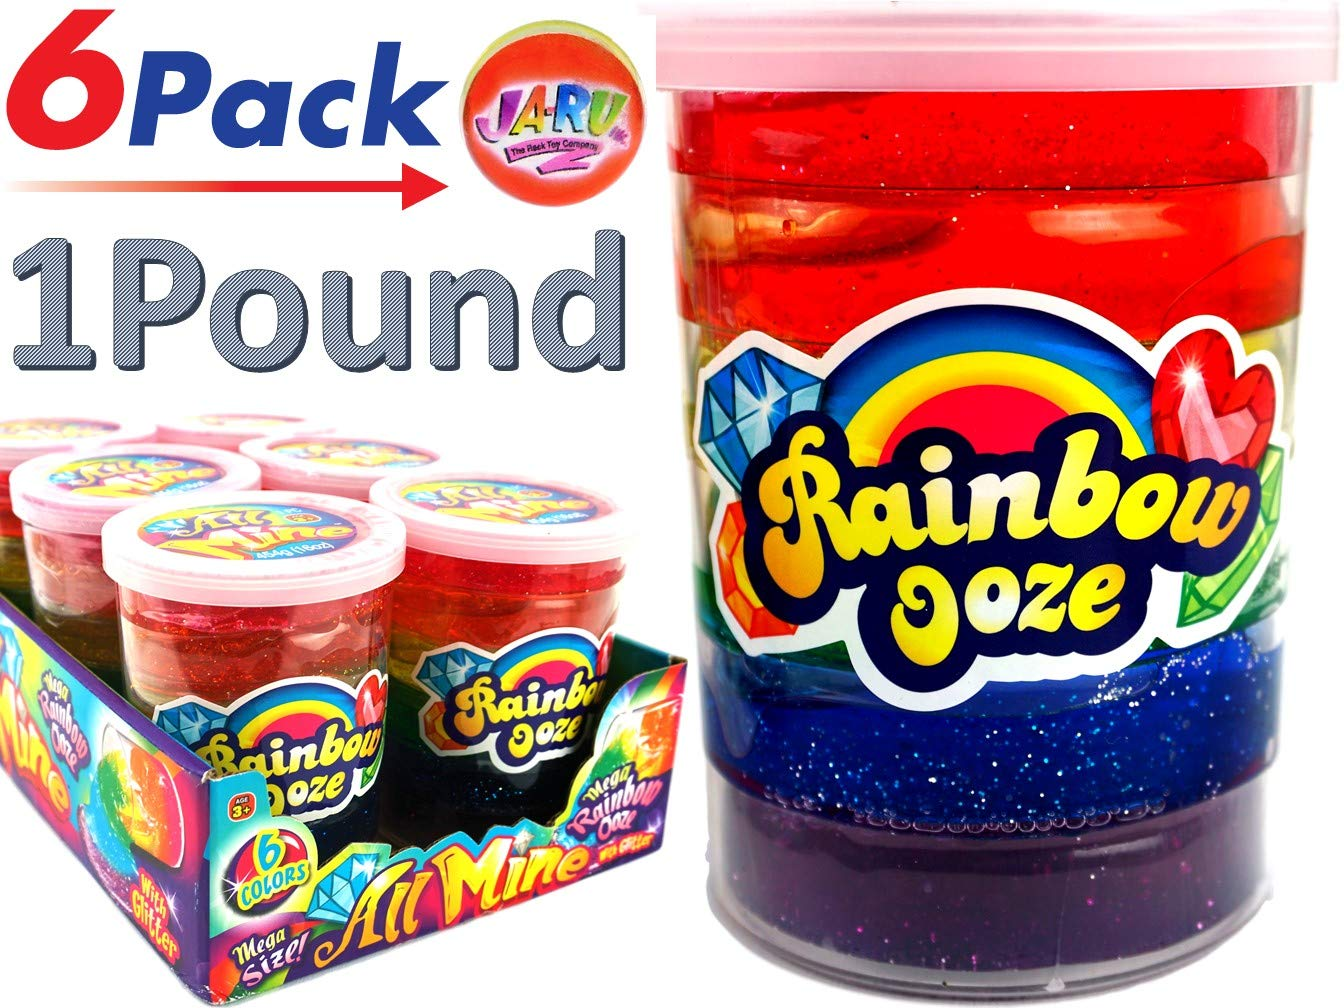 JA-RU Mega Rainbow Slime Kit 1 Pound Neon Glitter Colors (Pack of 6) Unicorn Party Girls Game. Slime Squishy and Stretchy. Arts and Crafts for Girls Party Favor Toy Supplies | Item #4636-6p